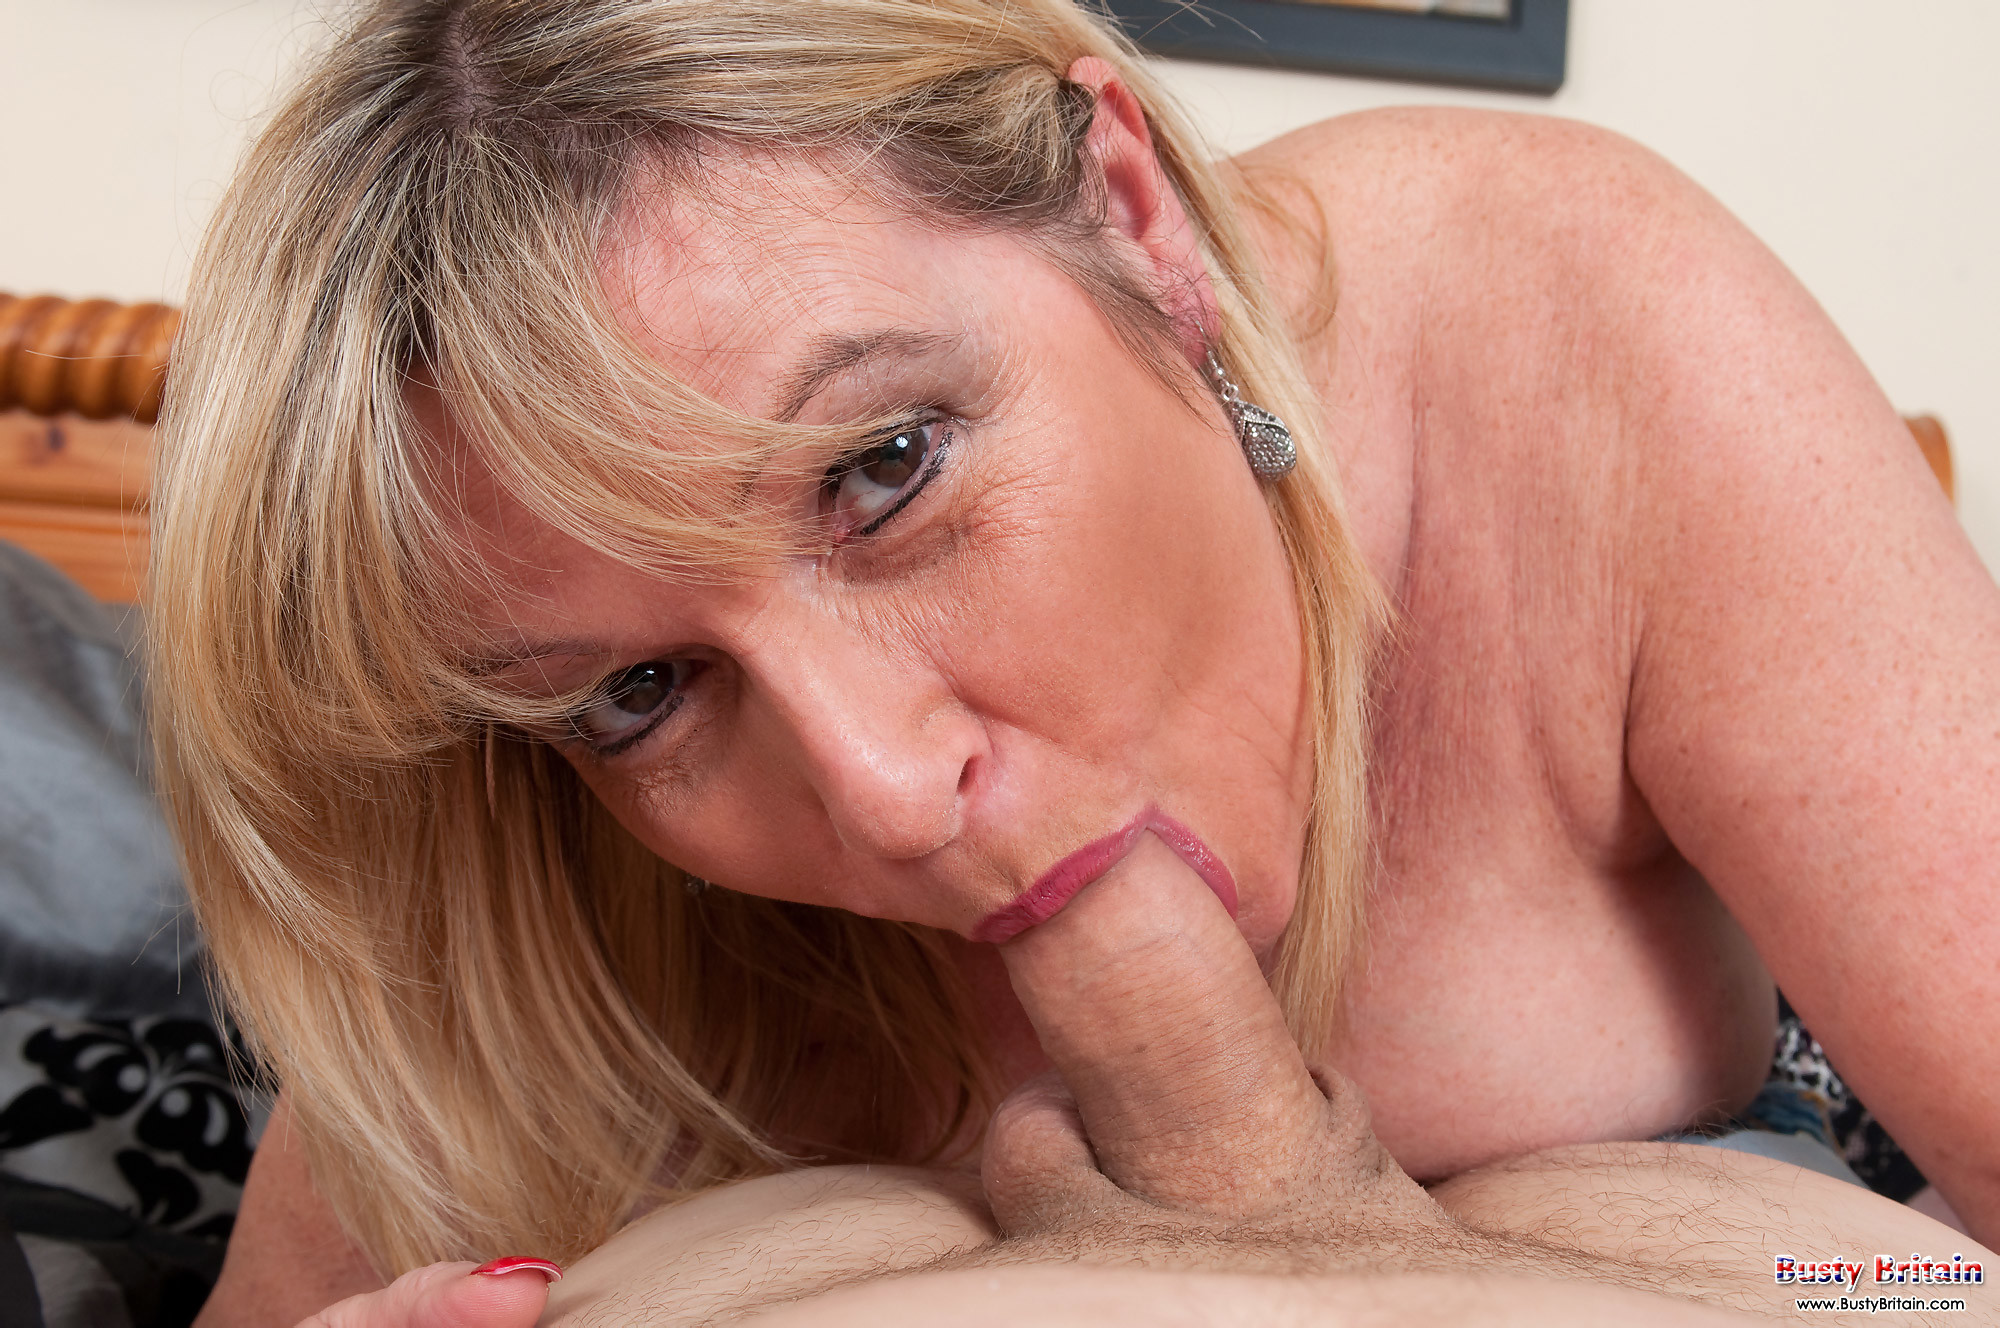 Deedra is a beautiful mature bbw who loves to fuck 7